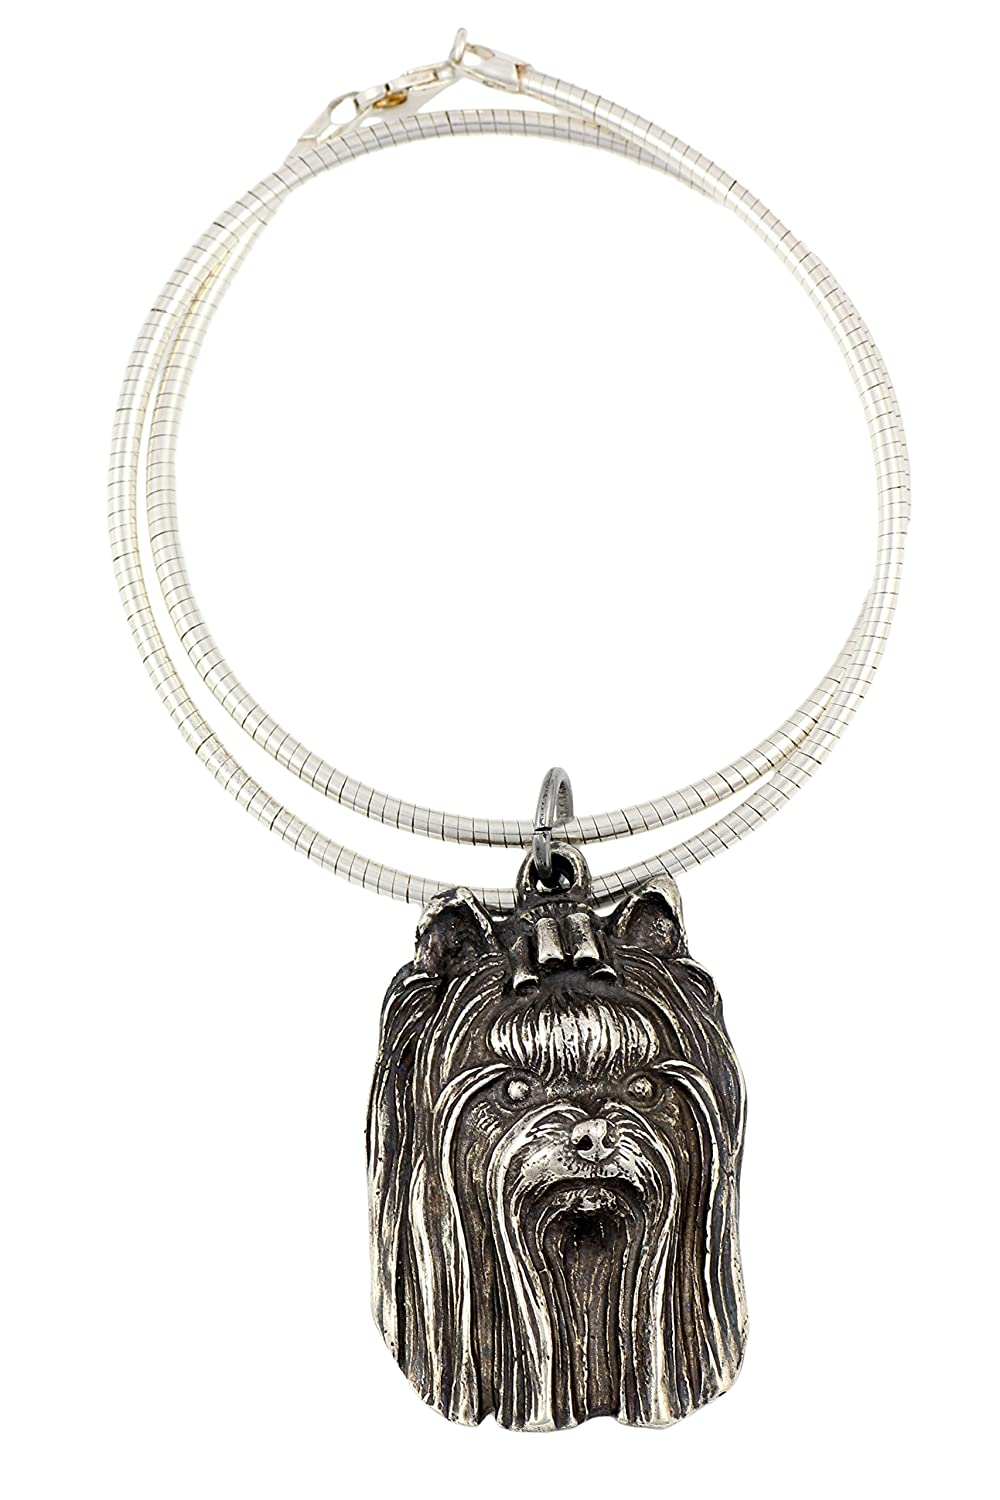 Necklace Silver Plated Dog Pendant on a Snake Chain ArtDog York Terrier